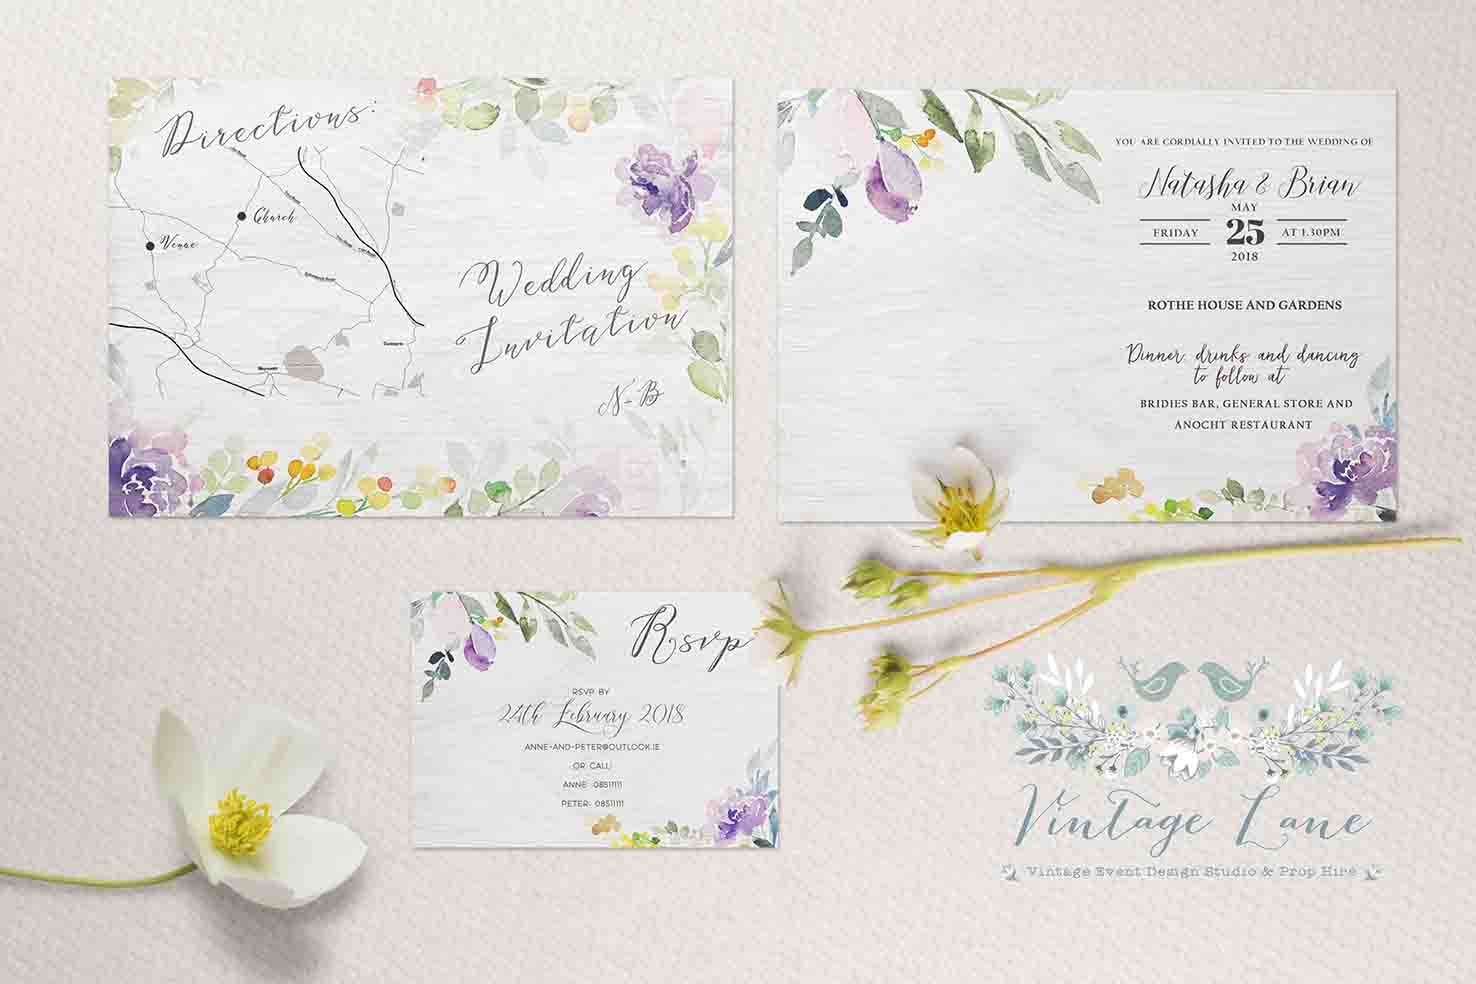 opening card with spring colour scheme spring flowers whimsical design wedding invitations cork irish bride